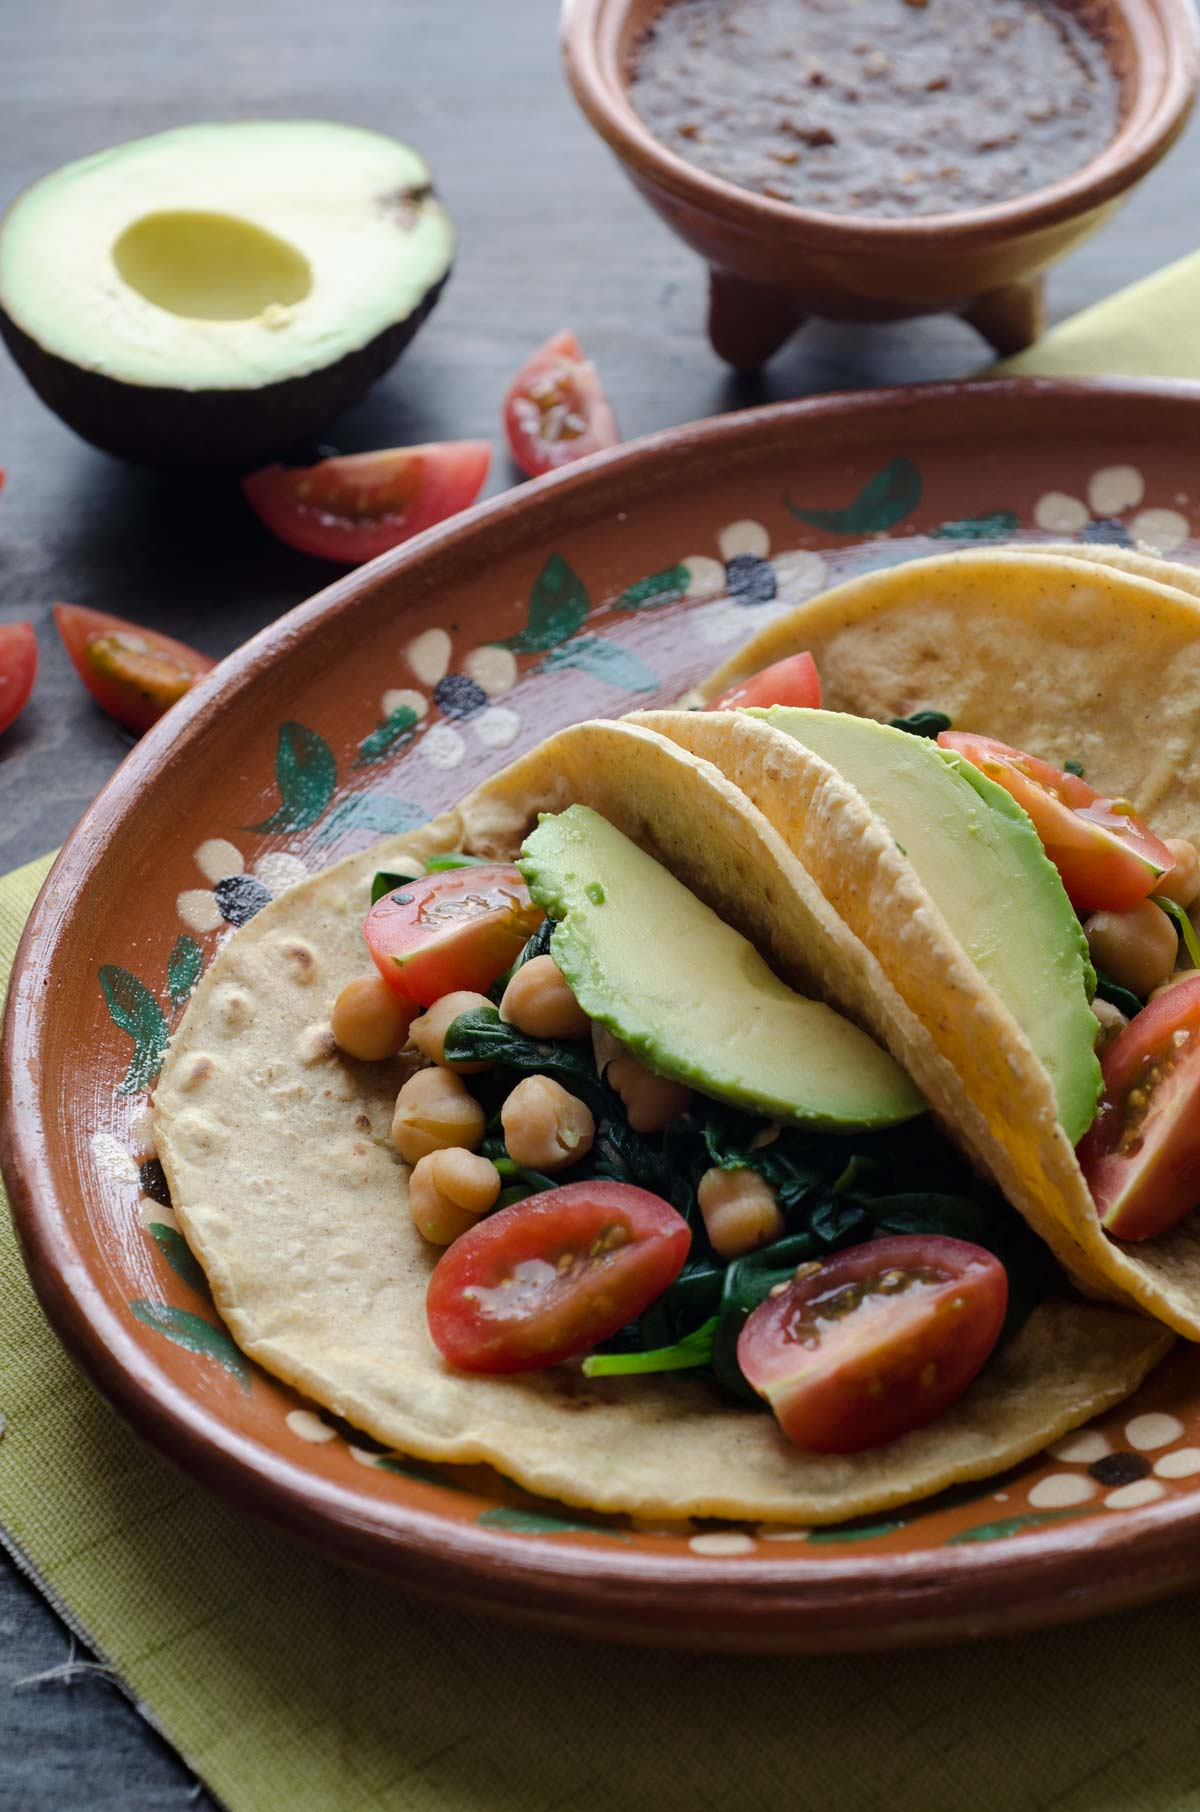 This recipe for chickpea and spinach tacos is my go-to easy lunch. Serve on warm corn tortillas, topped with cherry tomatoes, avocado, salsa, and pepitas.